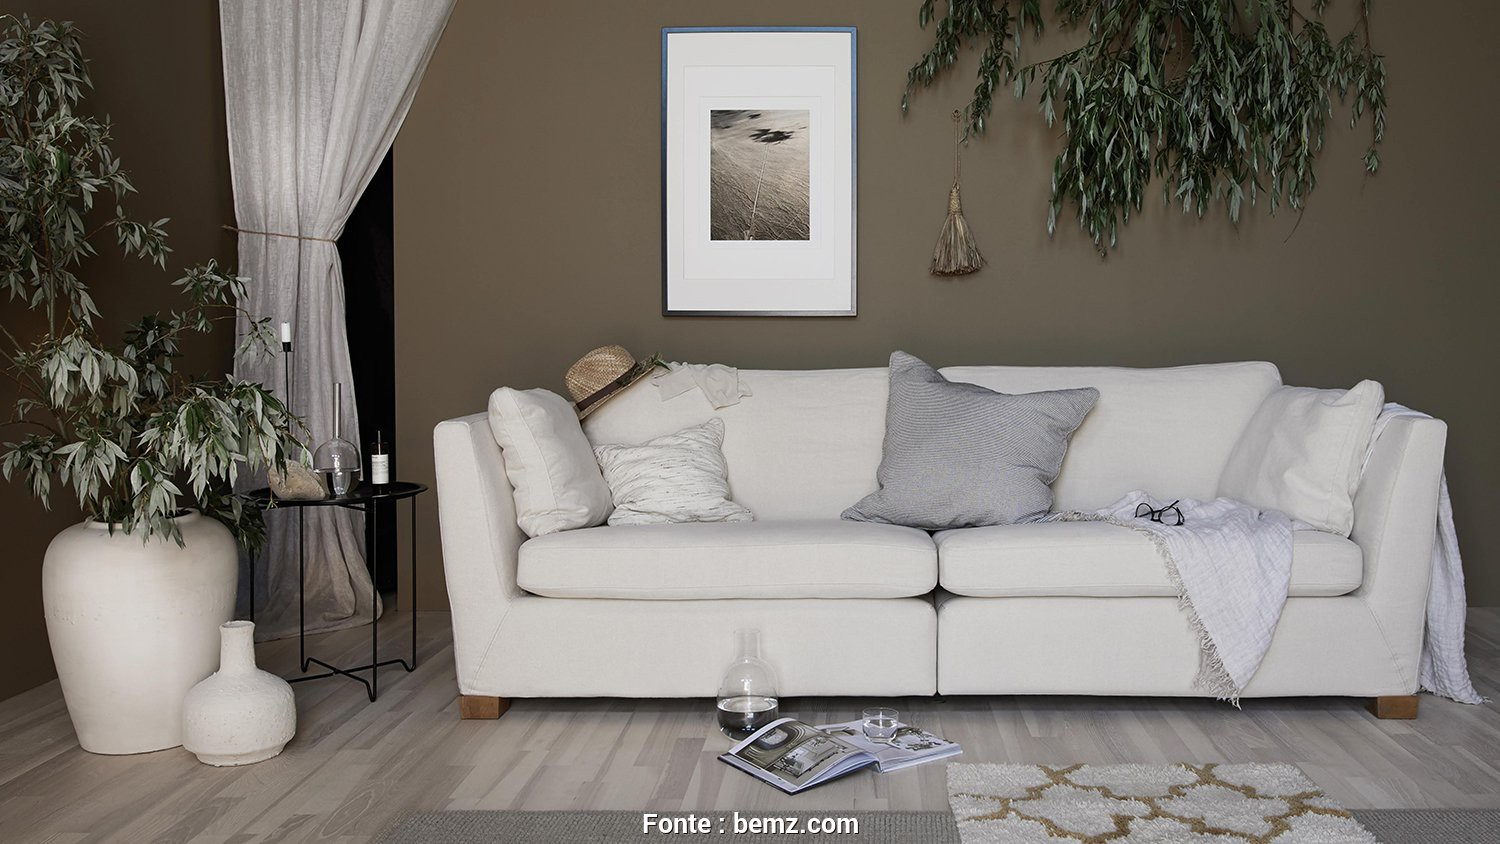 Divano Ikea Tylosand, Divertente Replacement IKEA Sofa Covers, Discontinued IKEA Couches, Armchairs, Bemz